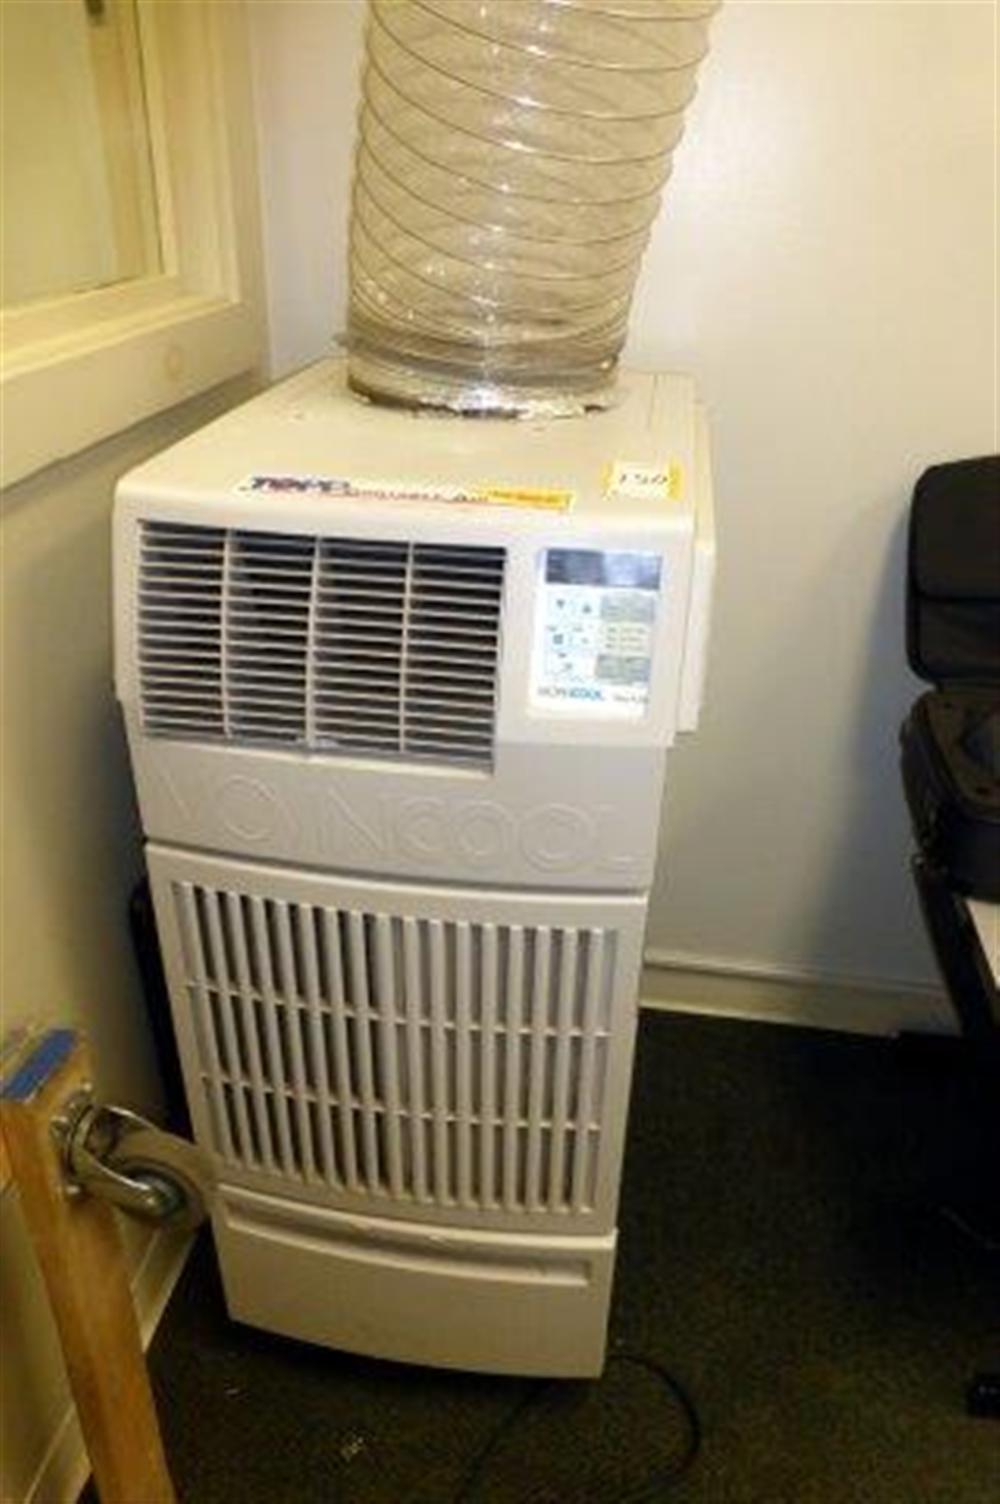 MOVIN COOL OFFICE PRO24 PORTABLE A/C